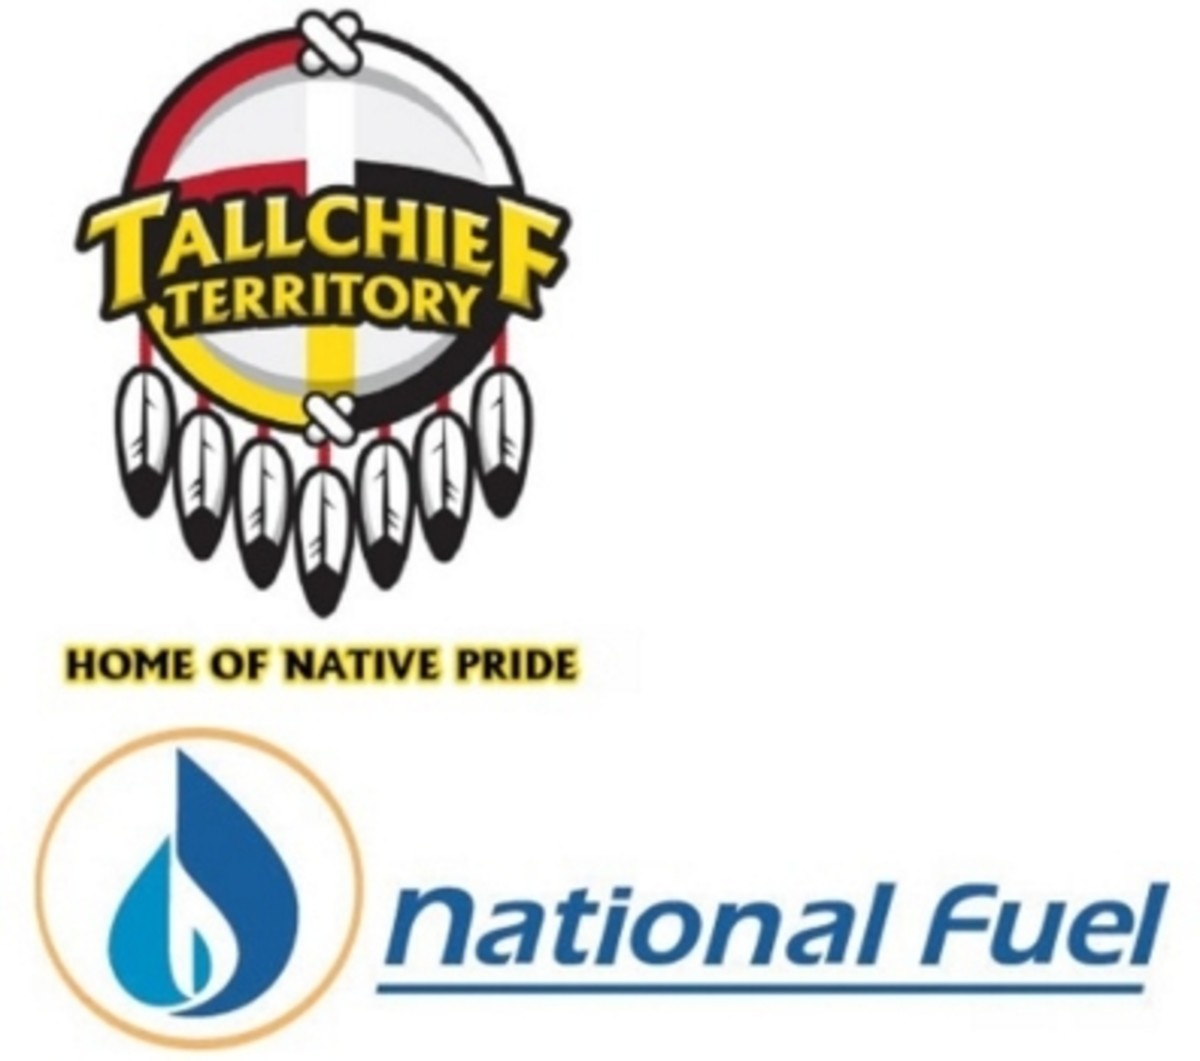 Tallchief Territory, home of Native Pride AND National Fuel - logos